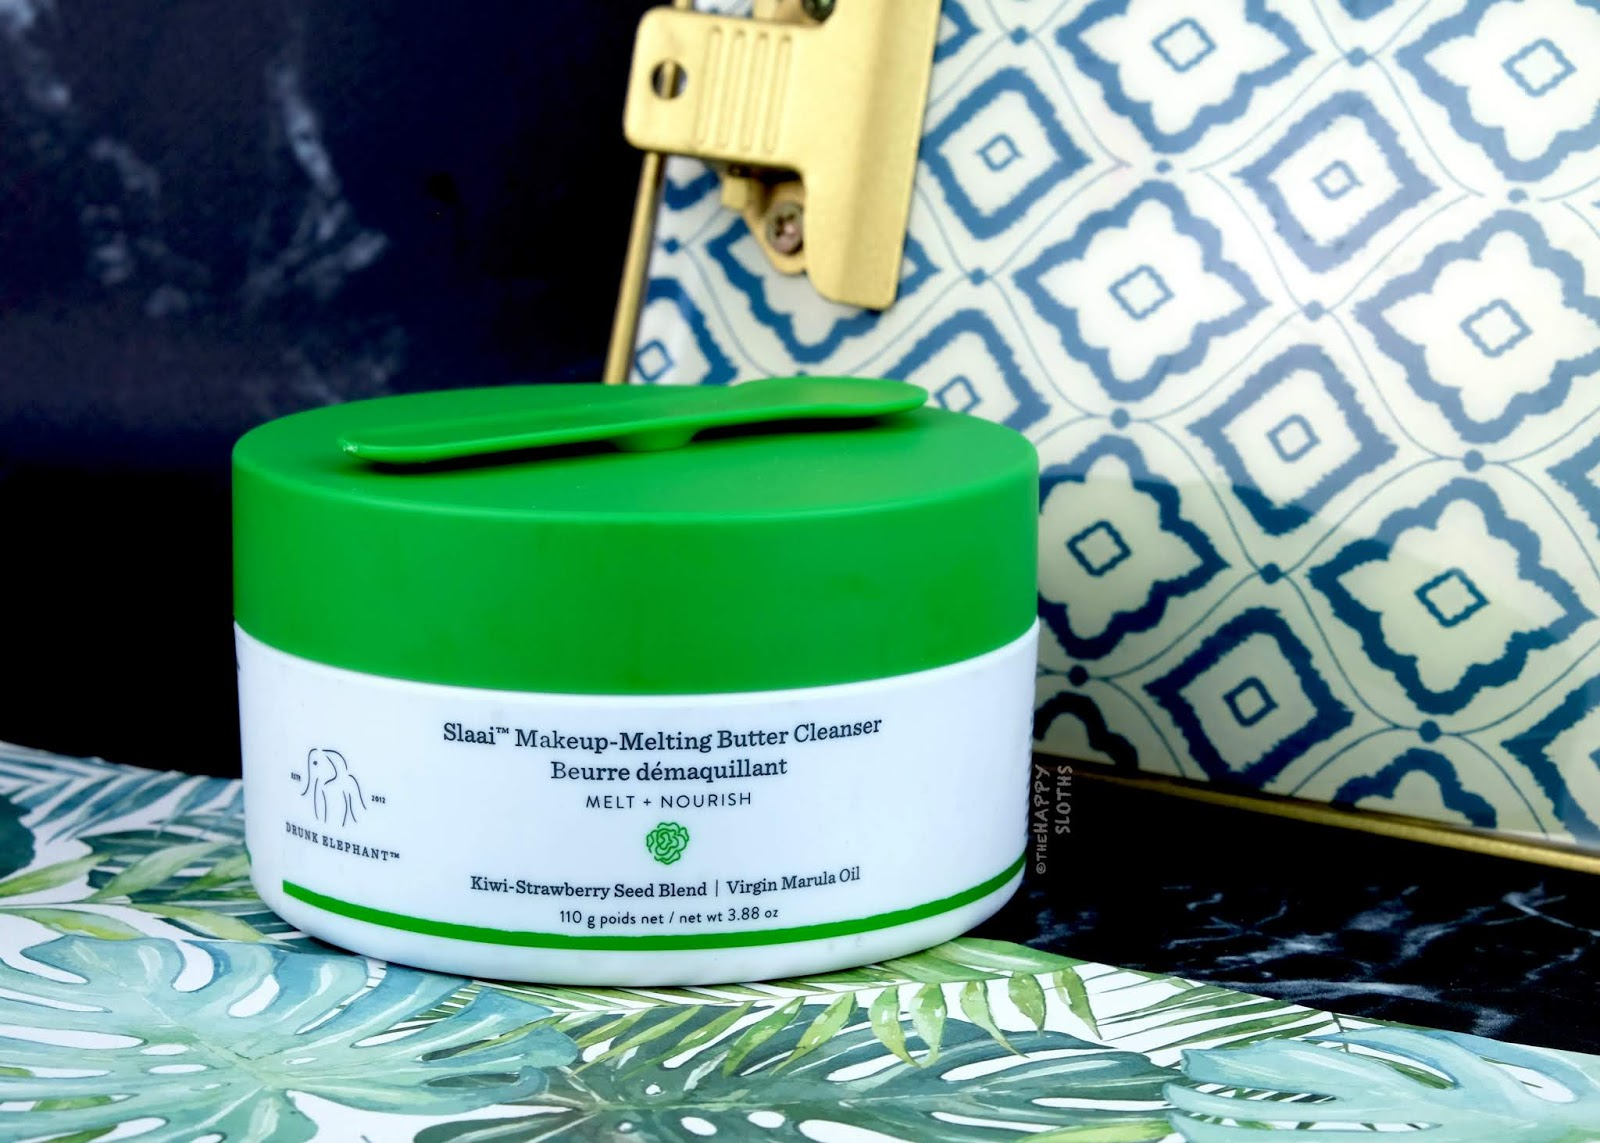 Drunk Elephant | Slaai Makeup-Melting Butter Cleanser: Review